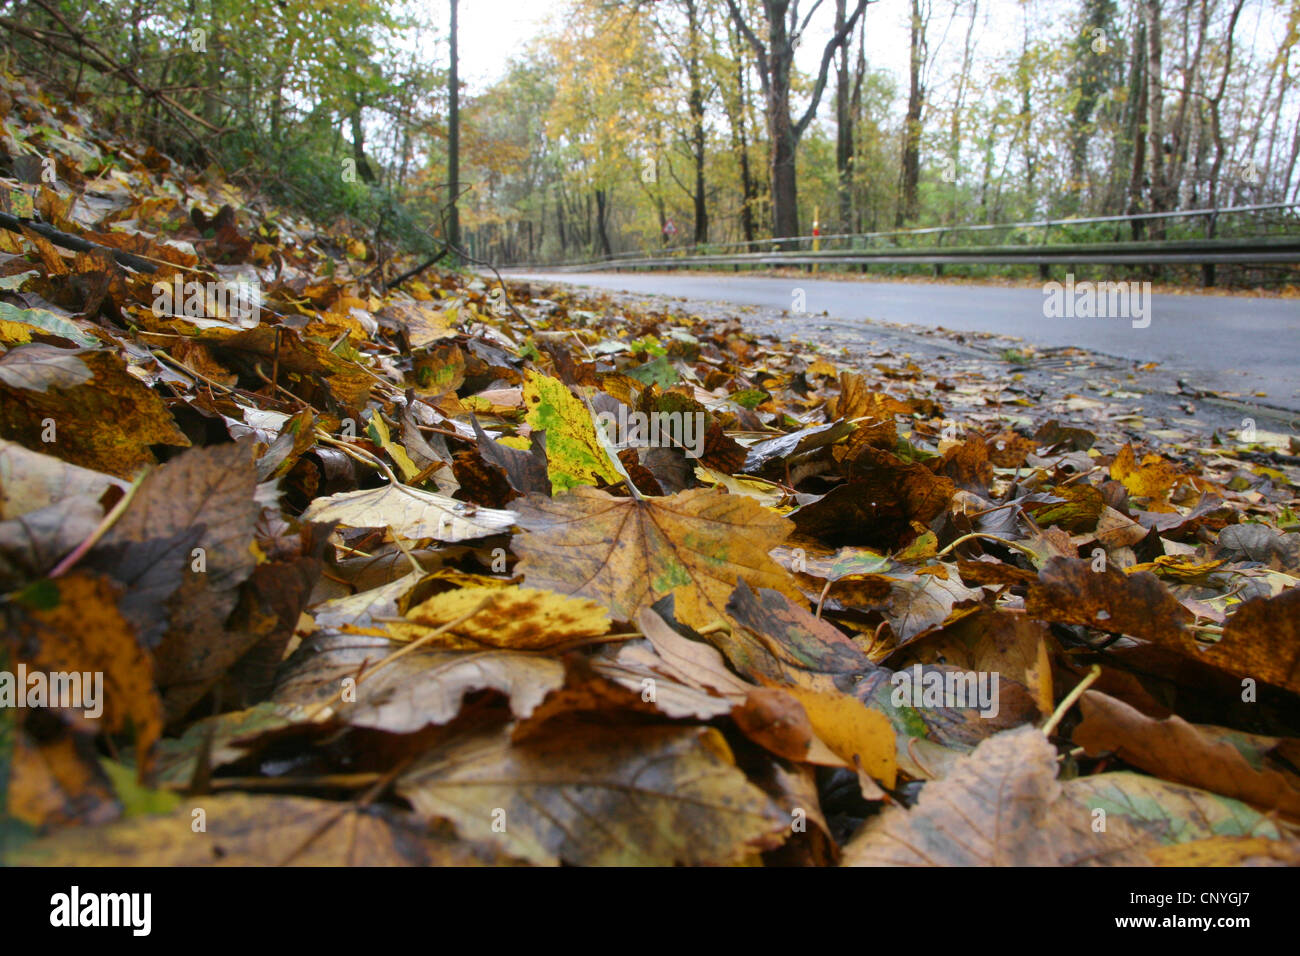 autumn leaves on a pavements at a street, Germany, North Rhine-Westphalia - Stock Image